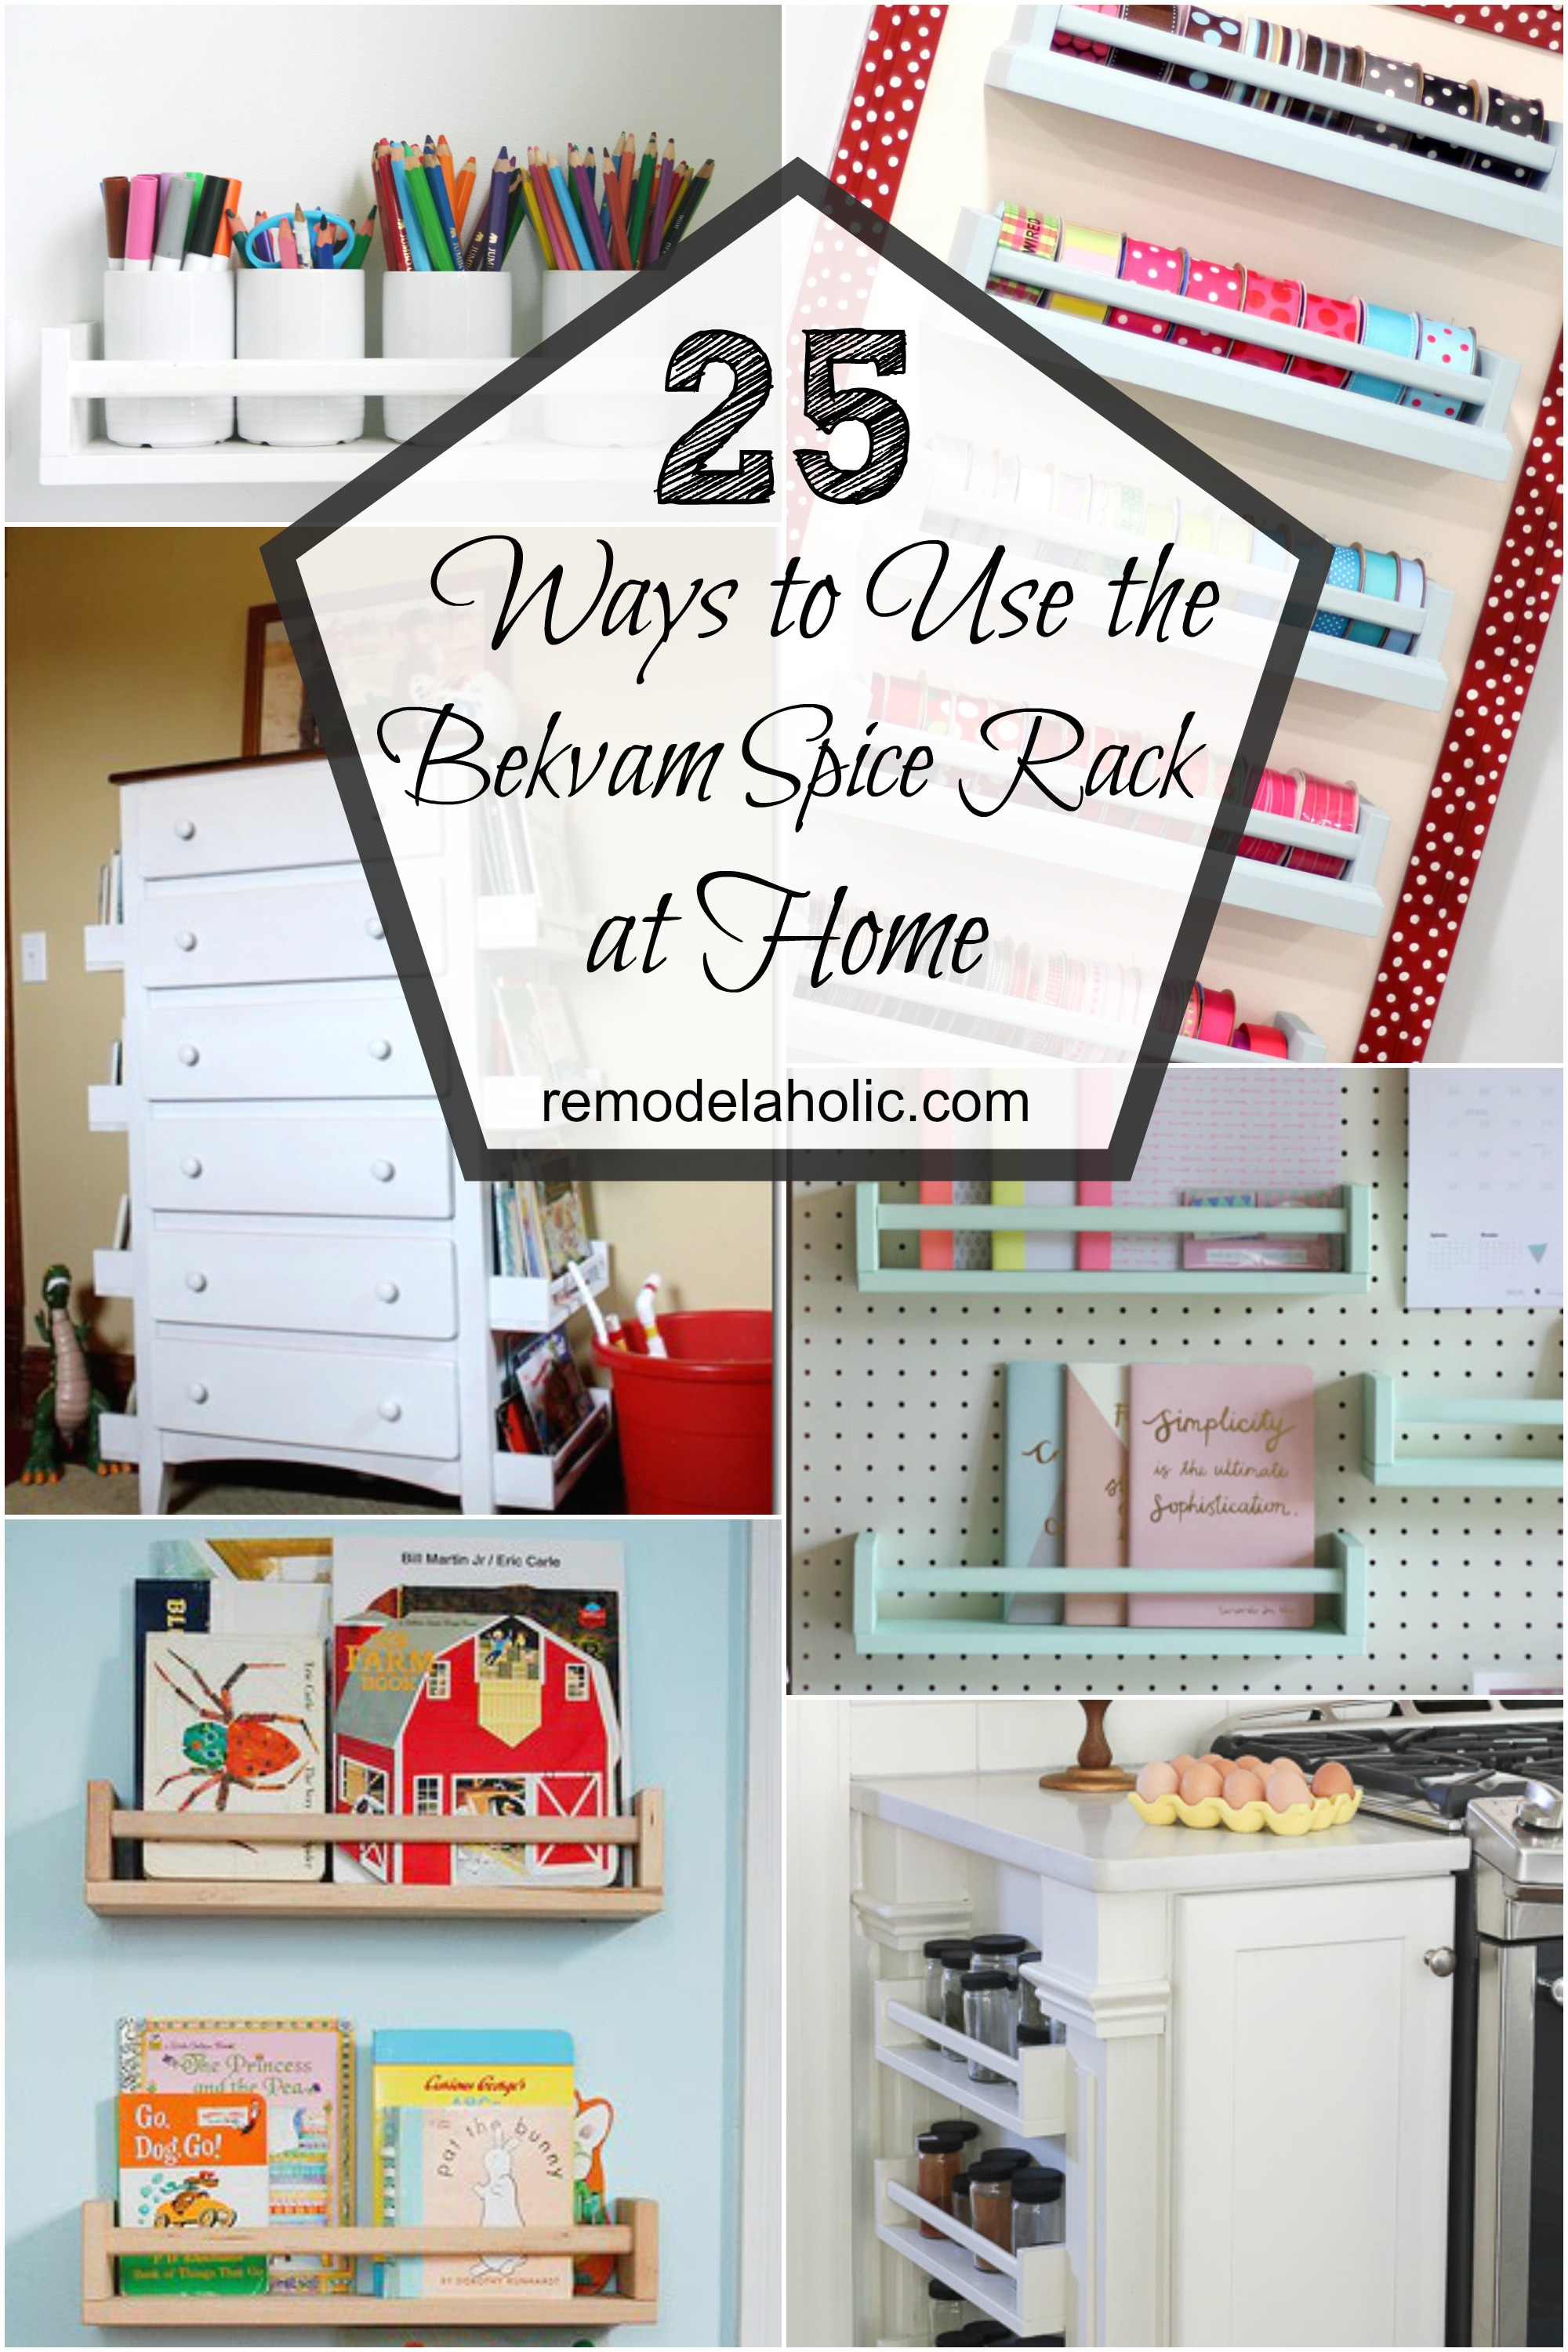 beach living room idea top color schemes for rooms remodelaholic | 25 ways to use ikea bekvam spice racks at home